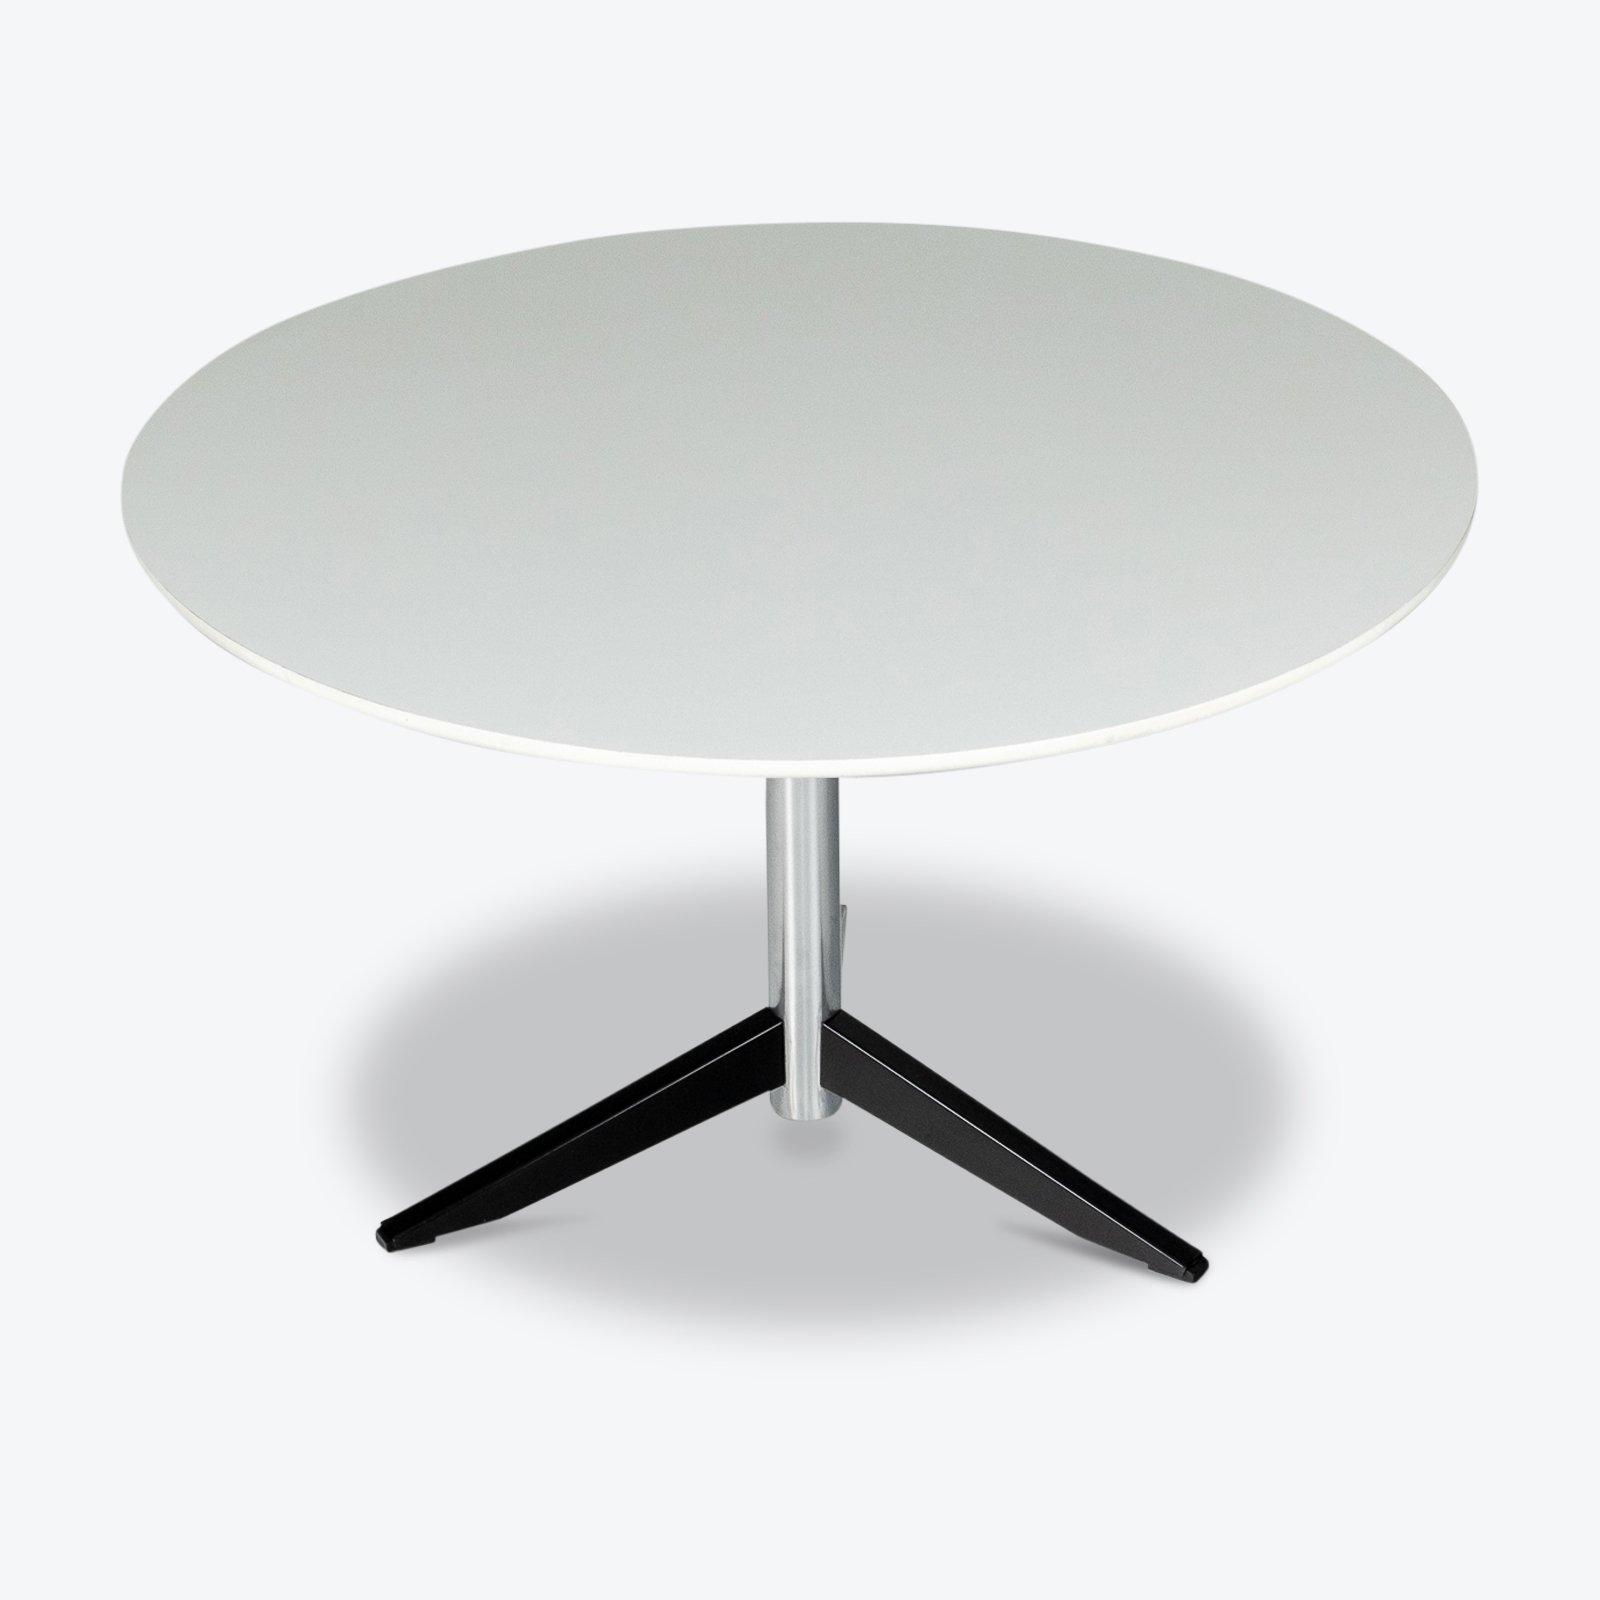 Model Te06 Dining Table By Martin Visser For 't Spectrum, 1960s, The Netherlands25 Hero